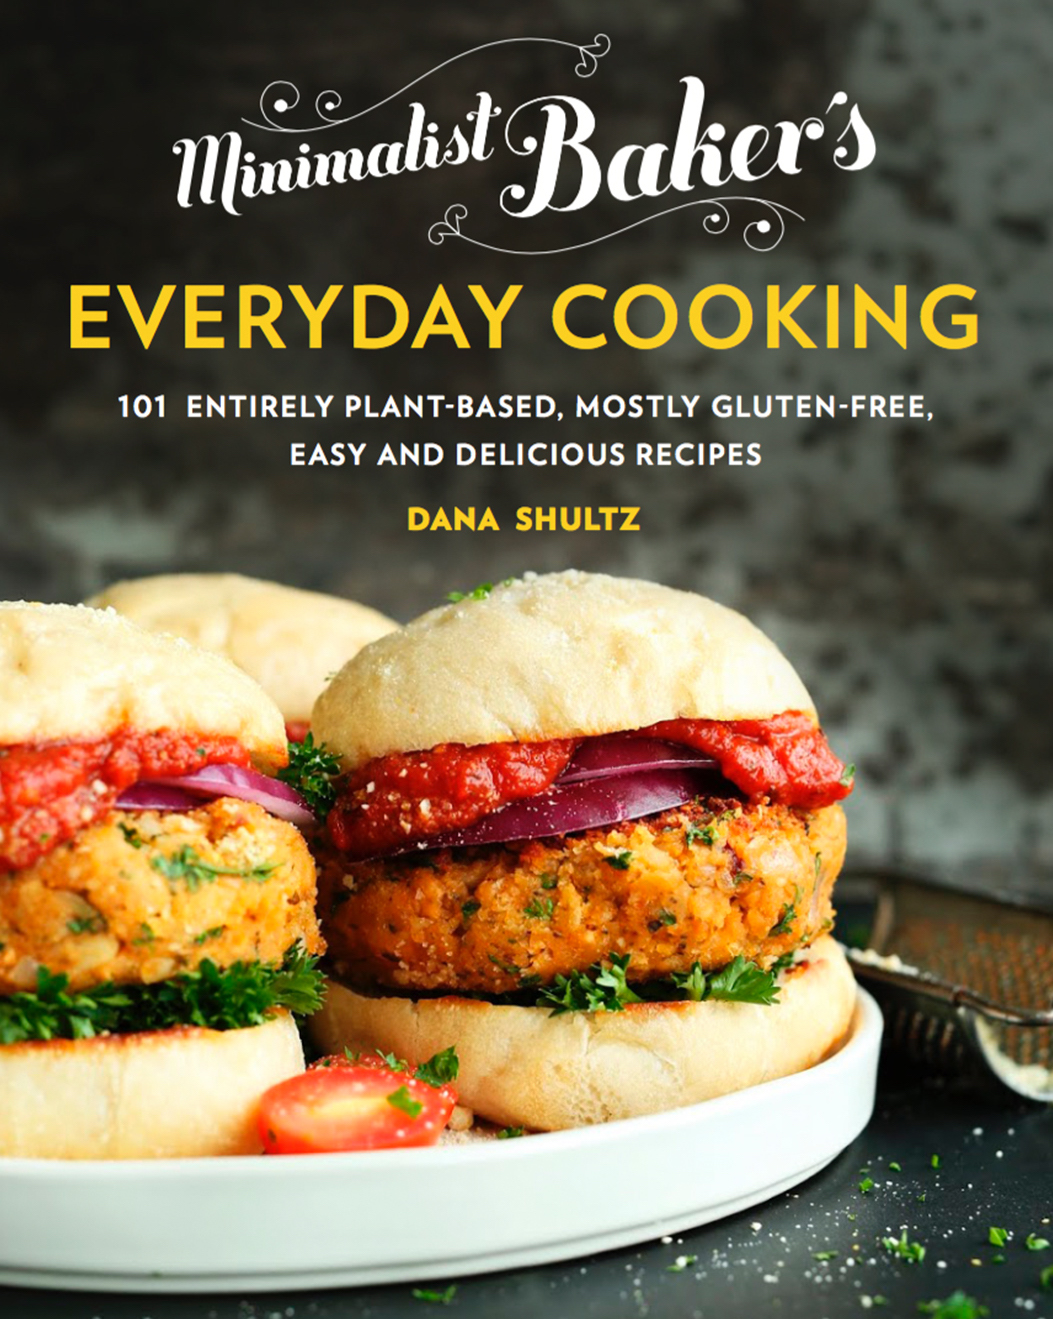 Vegan crunk the minimalist baker has a cookbook and its awesome i think we can all agree that when it comes to vegan recipe blogs minimalist baker is tops thats the blog i send new vegans or the veg curious to when forumfinder Images